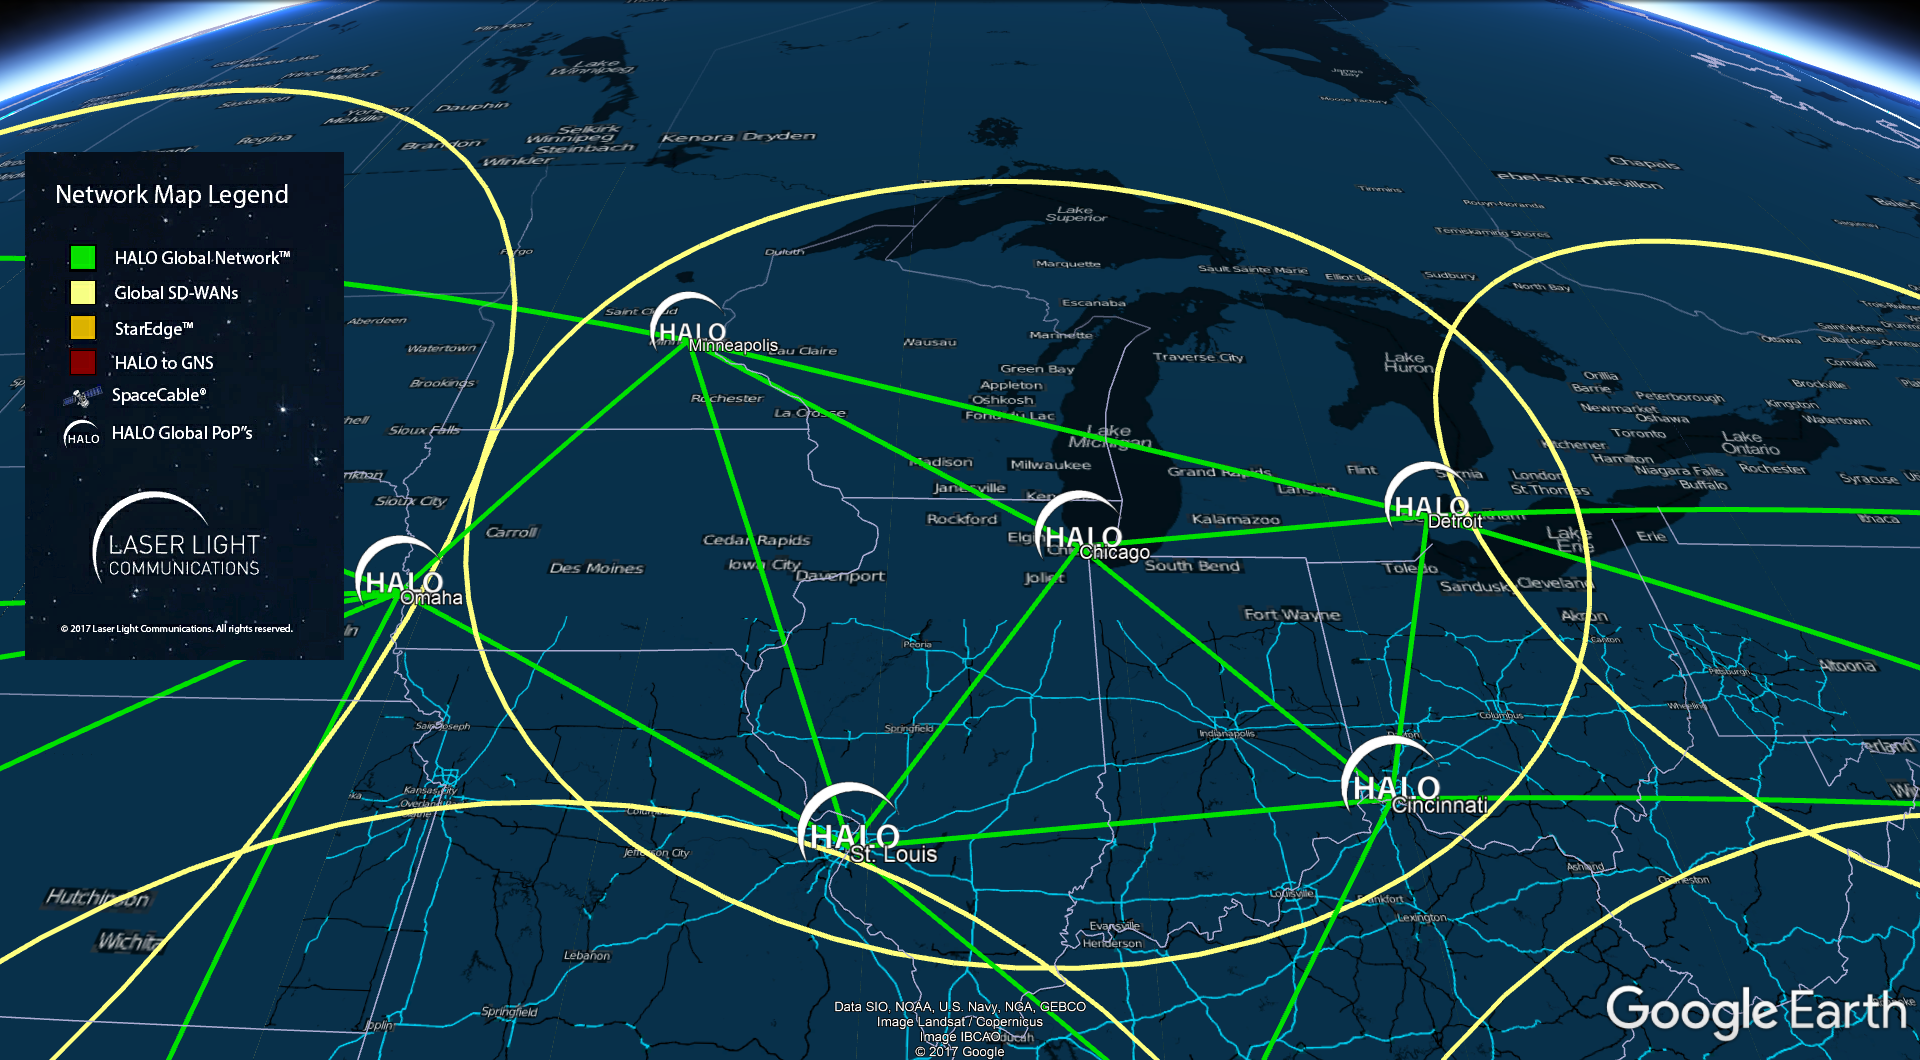 North America - North Central SD-WAN